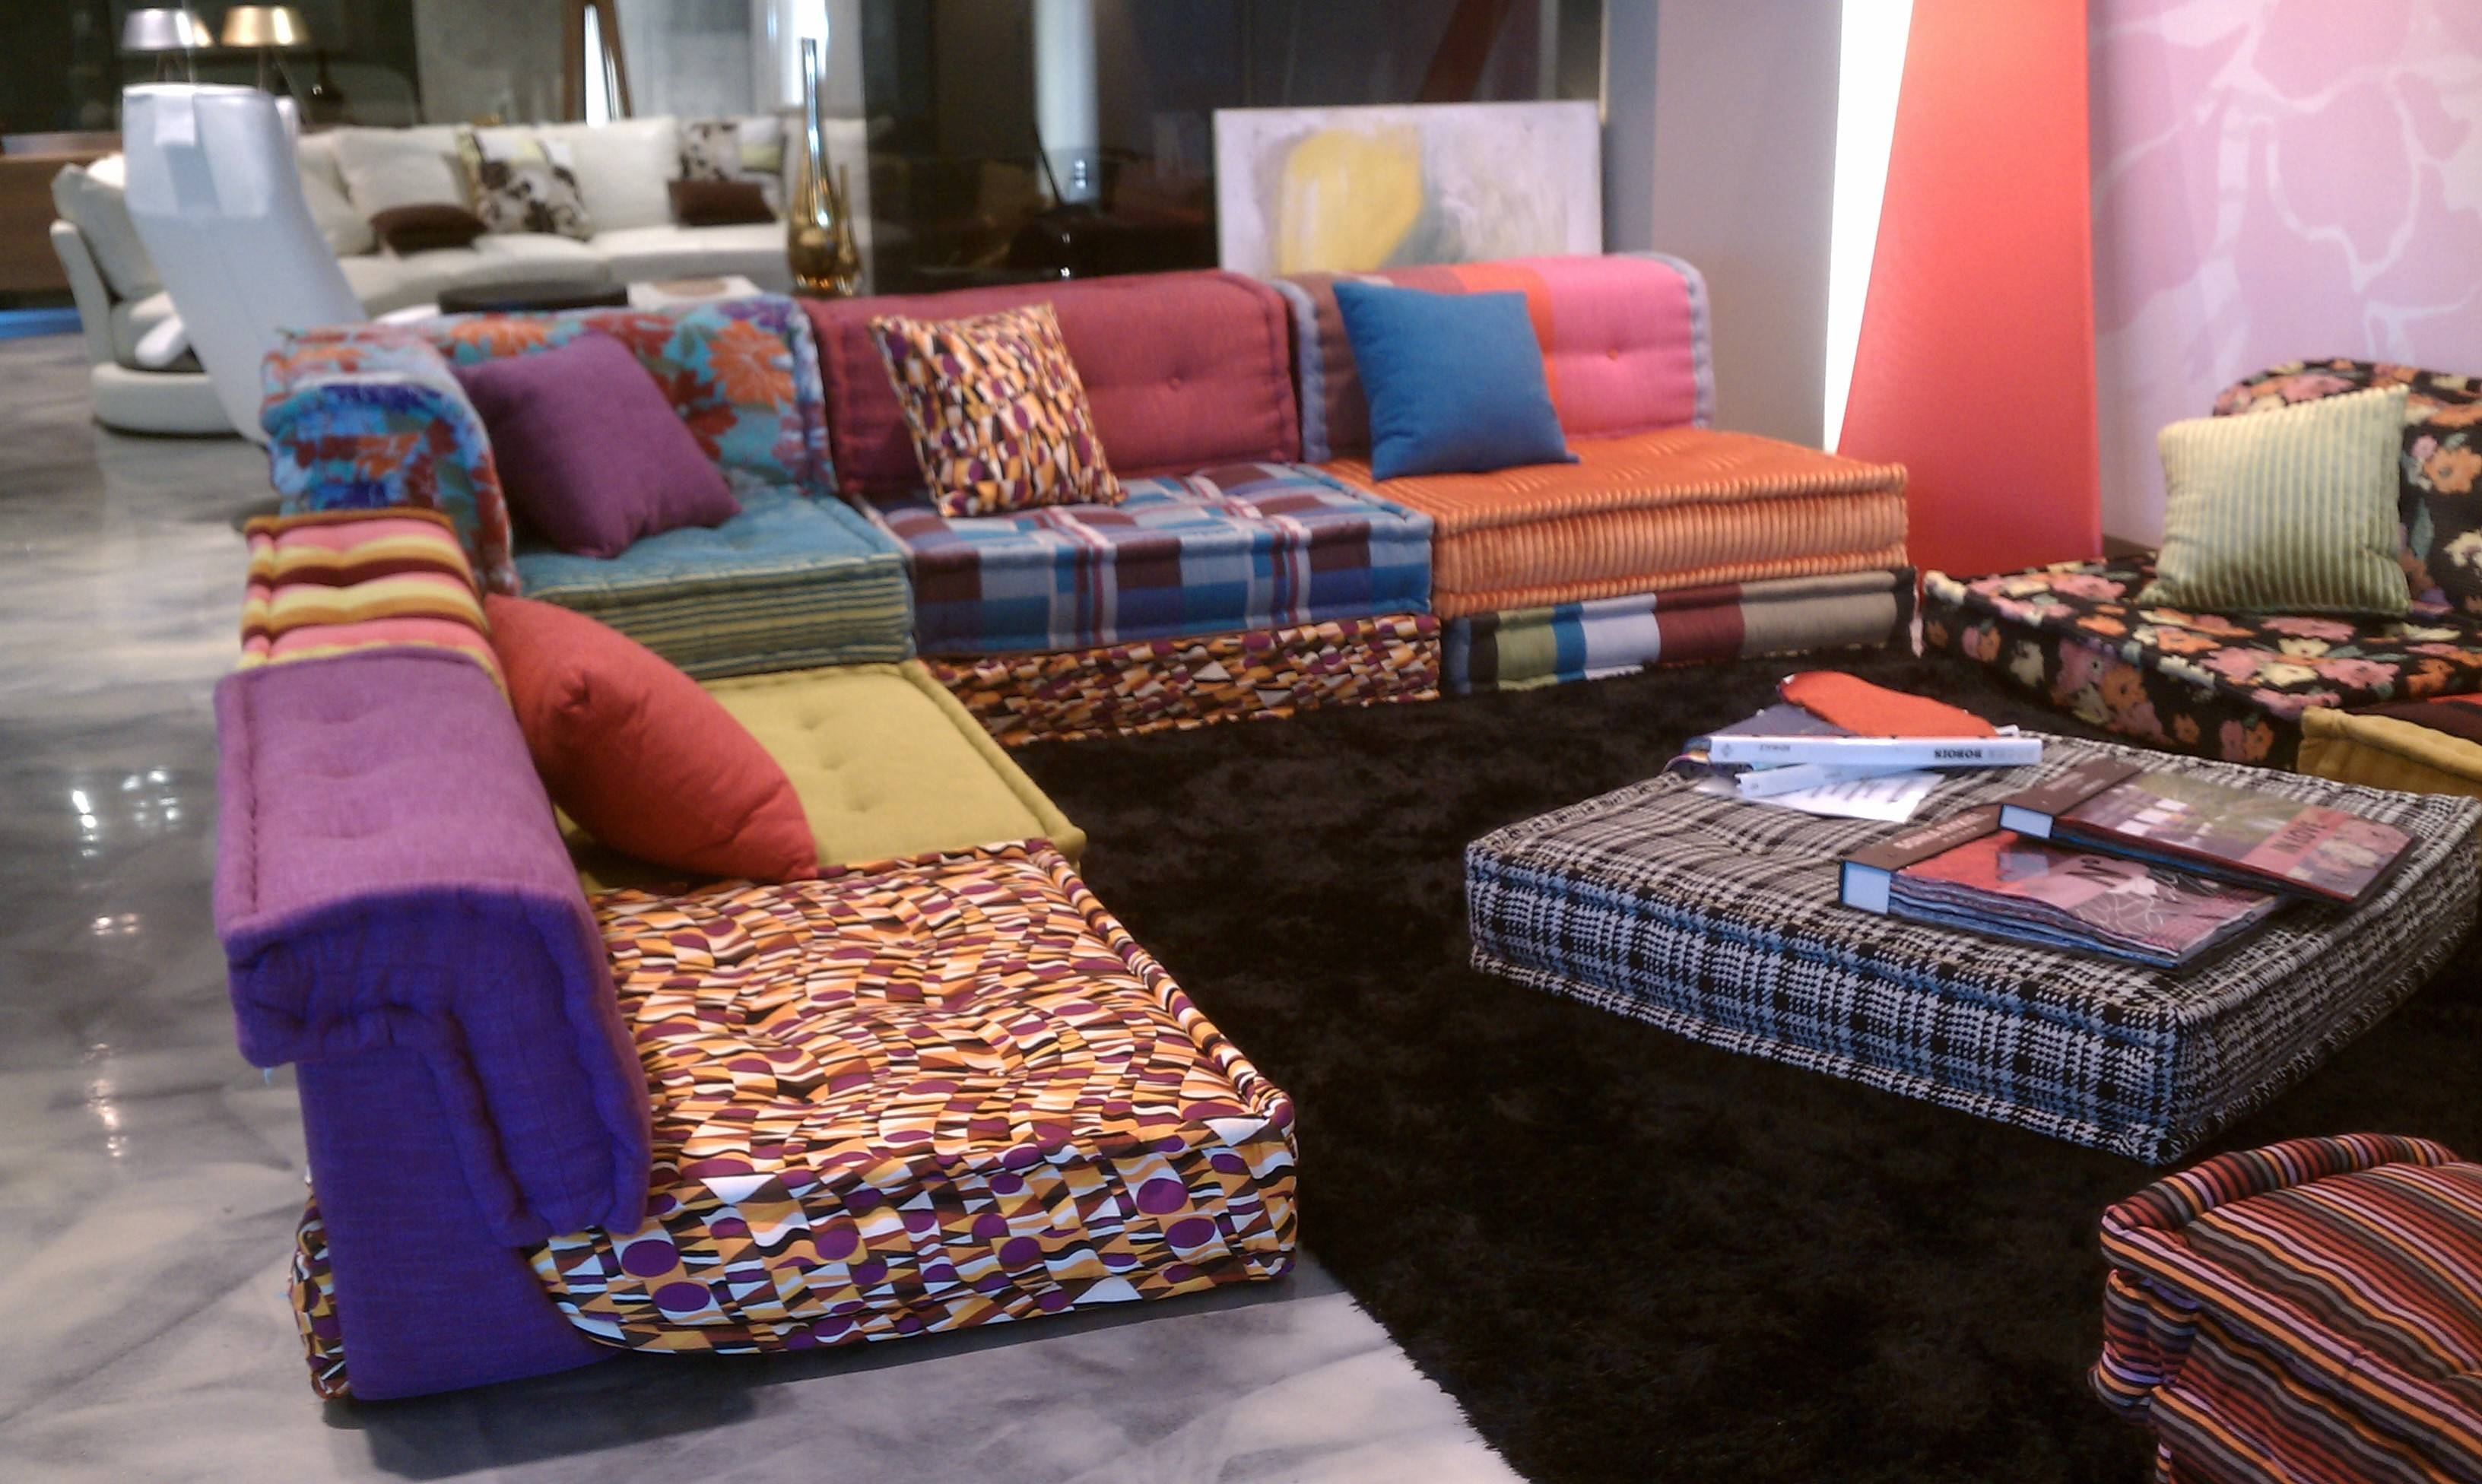 Dream Couch: Missoni Bohemian Sofa | The Cherie Bomb with regard to Mahjong Sofas (Image 4 of 15)